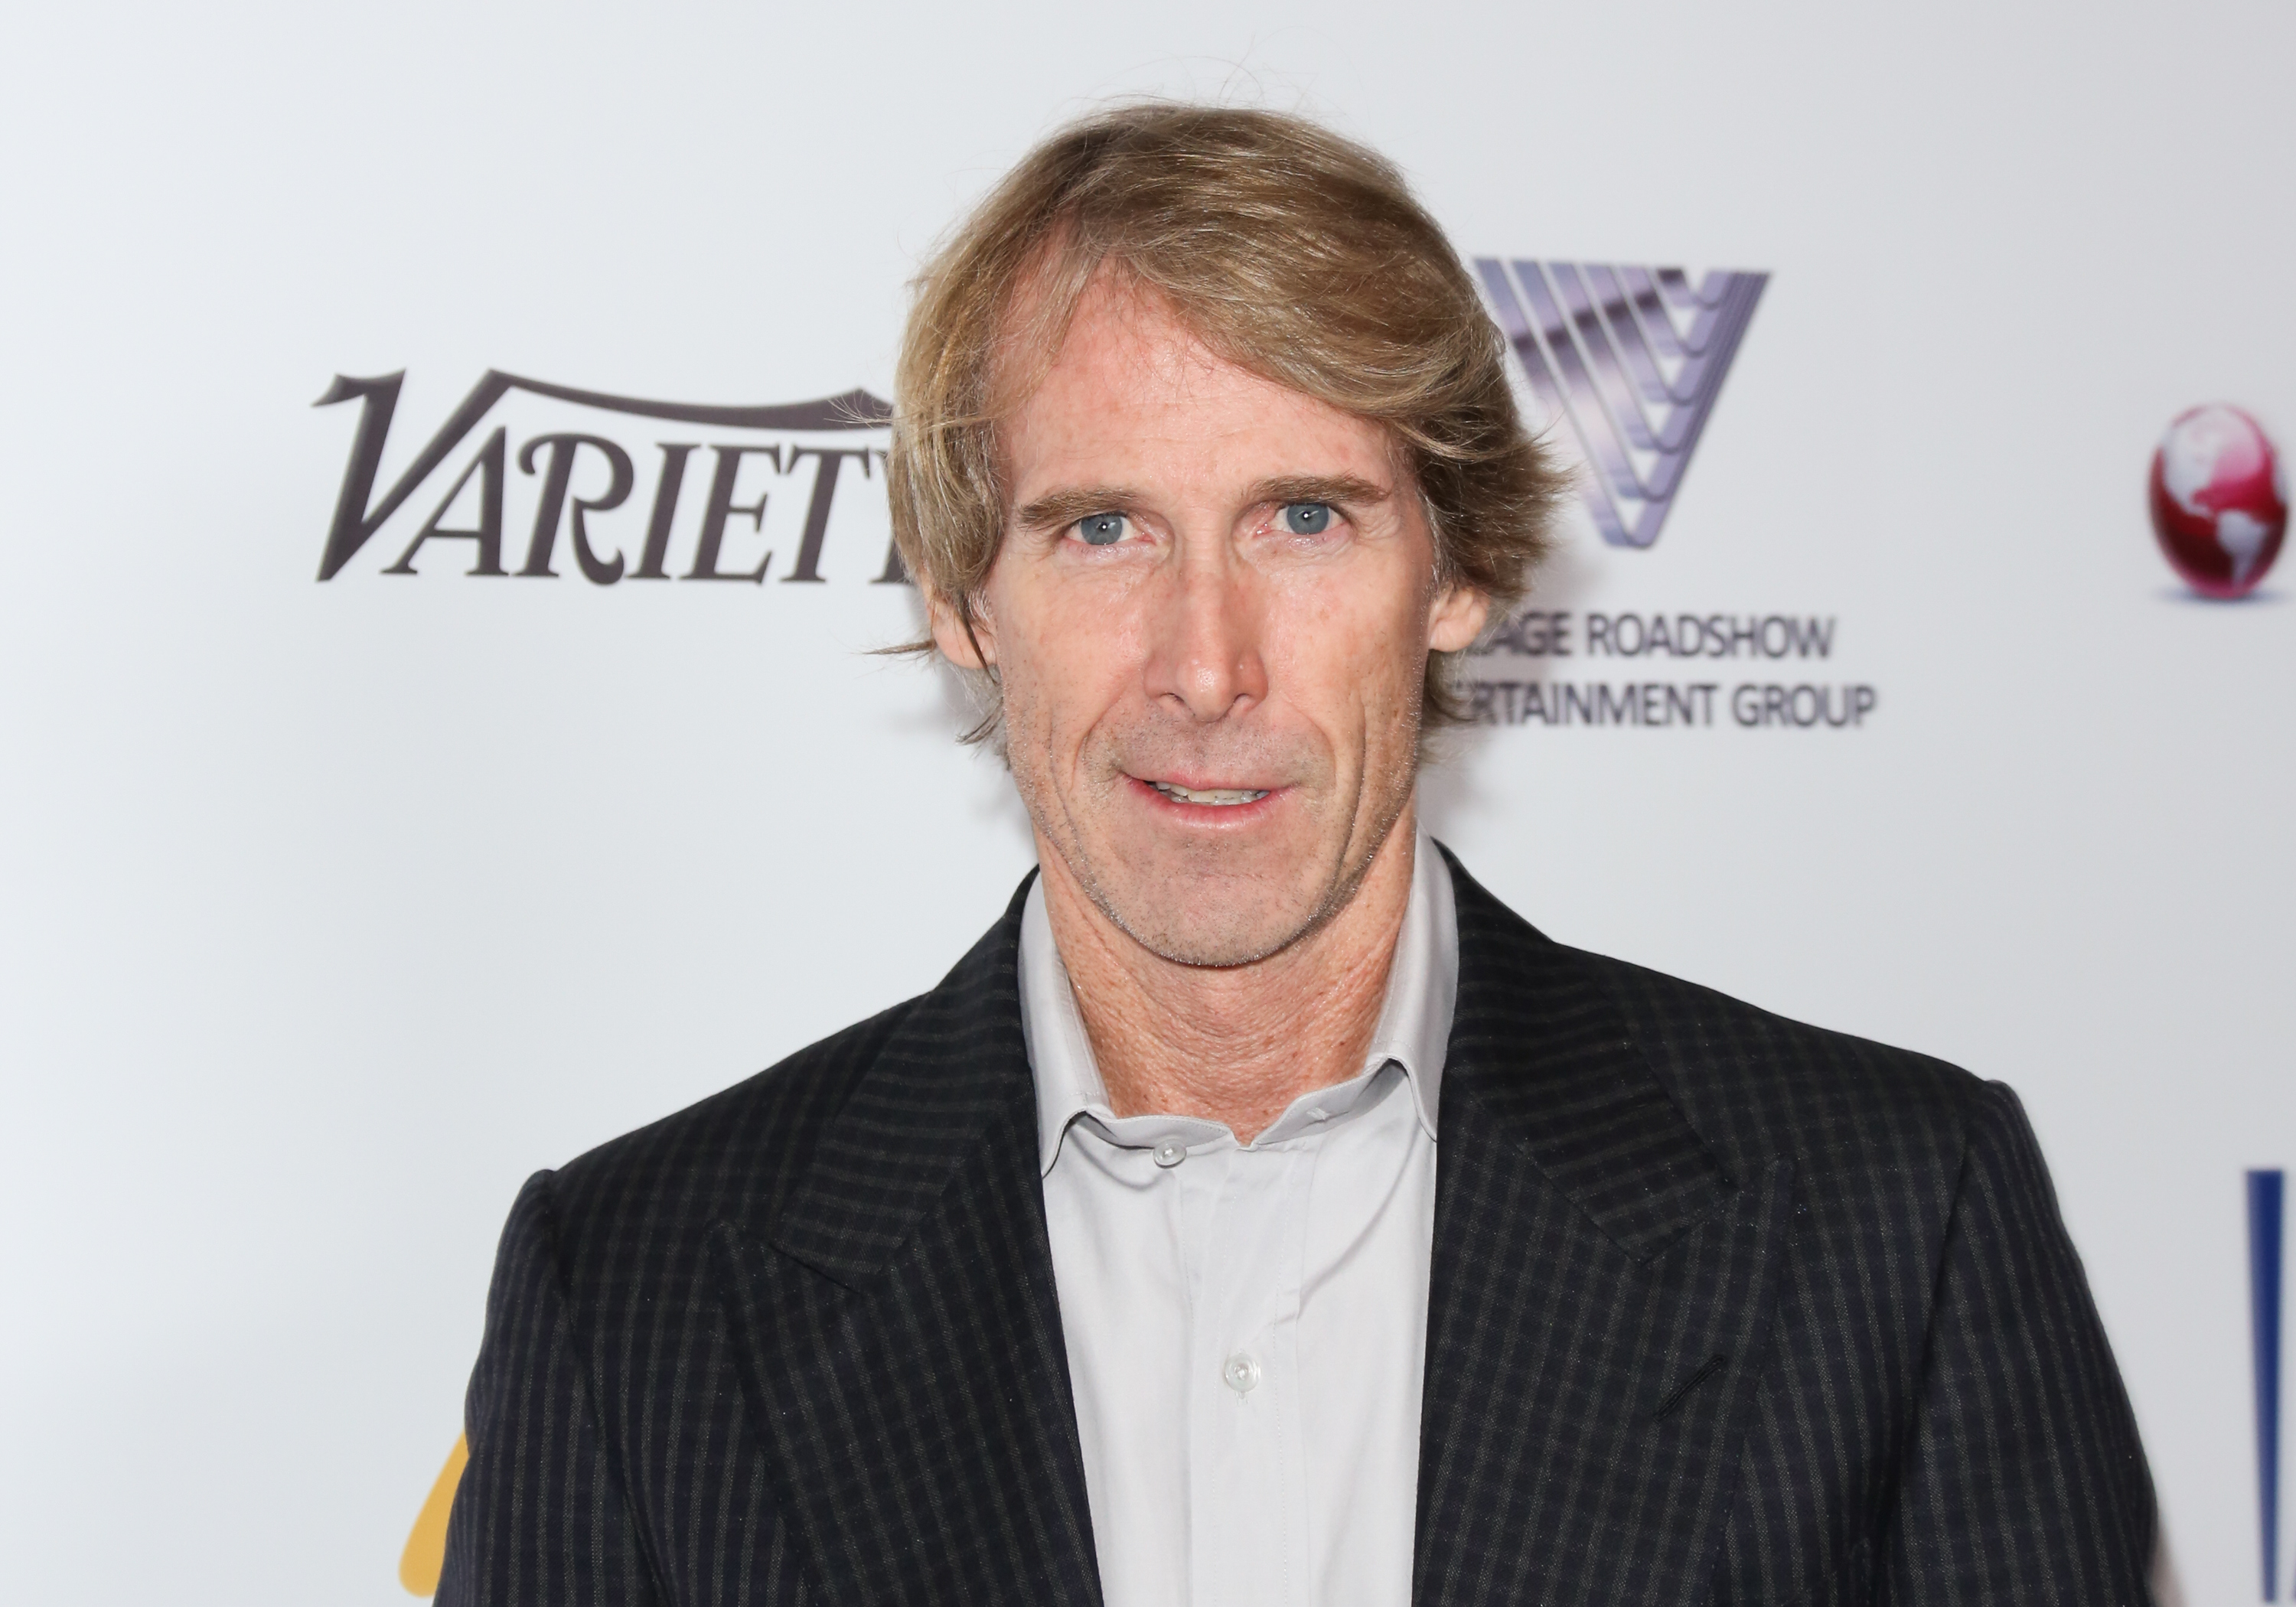 Director Michael Bay attends the 4th Annual Australians In Film Awards, Benefit Dinner and Gala at The InterContinental Hotel on October 25, 2015 in Century City, California.